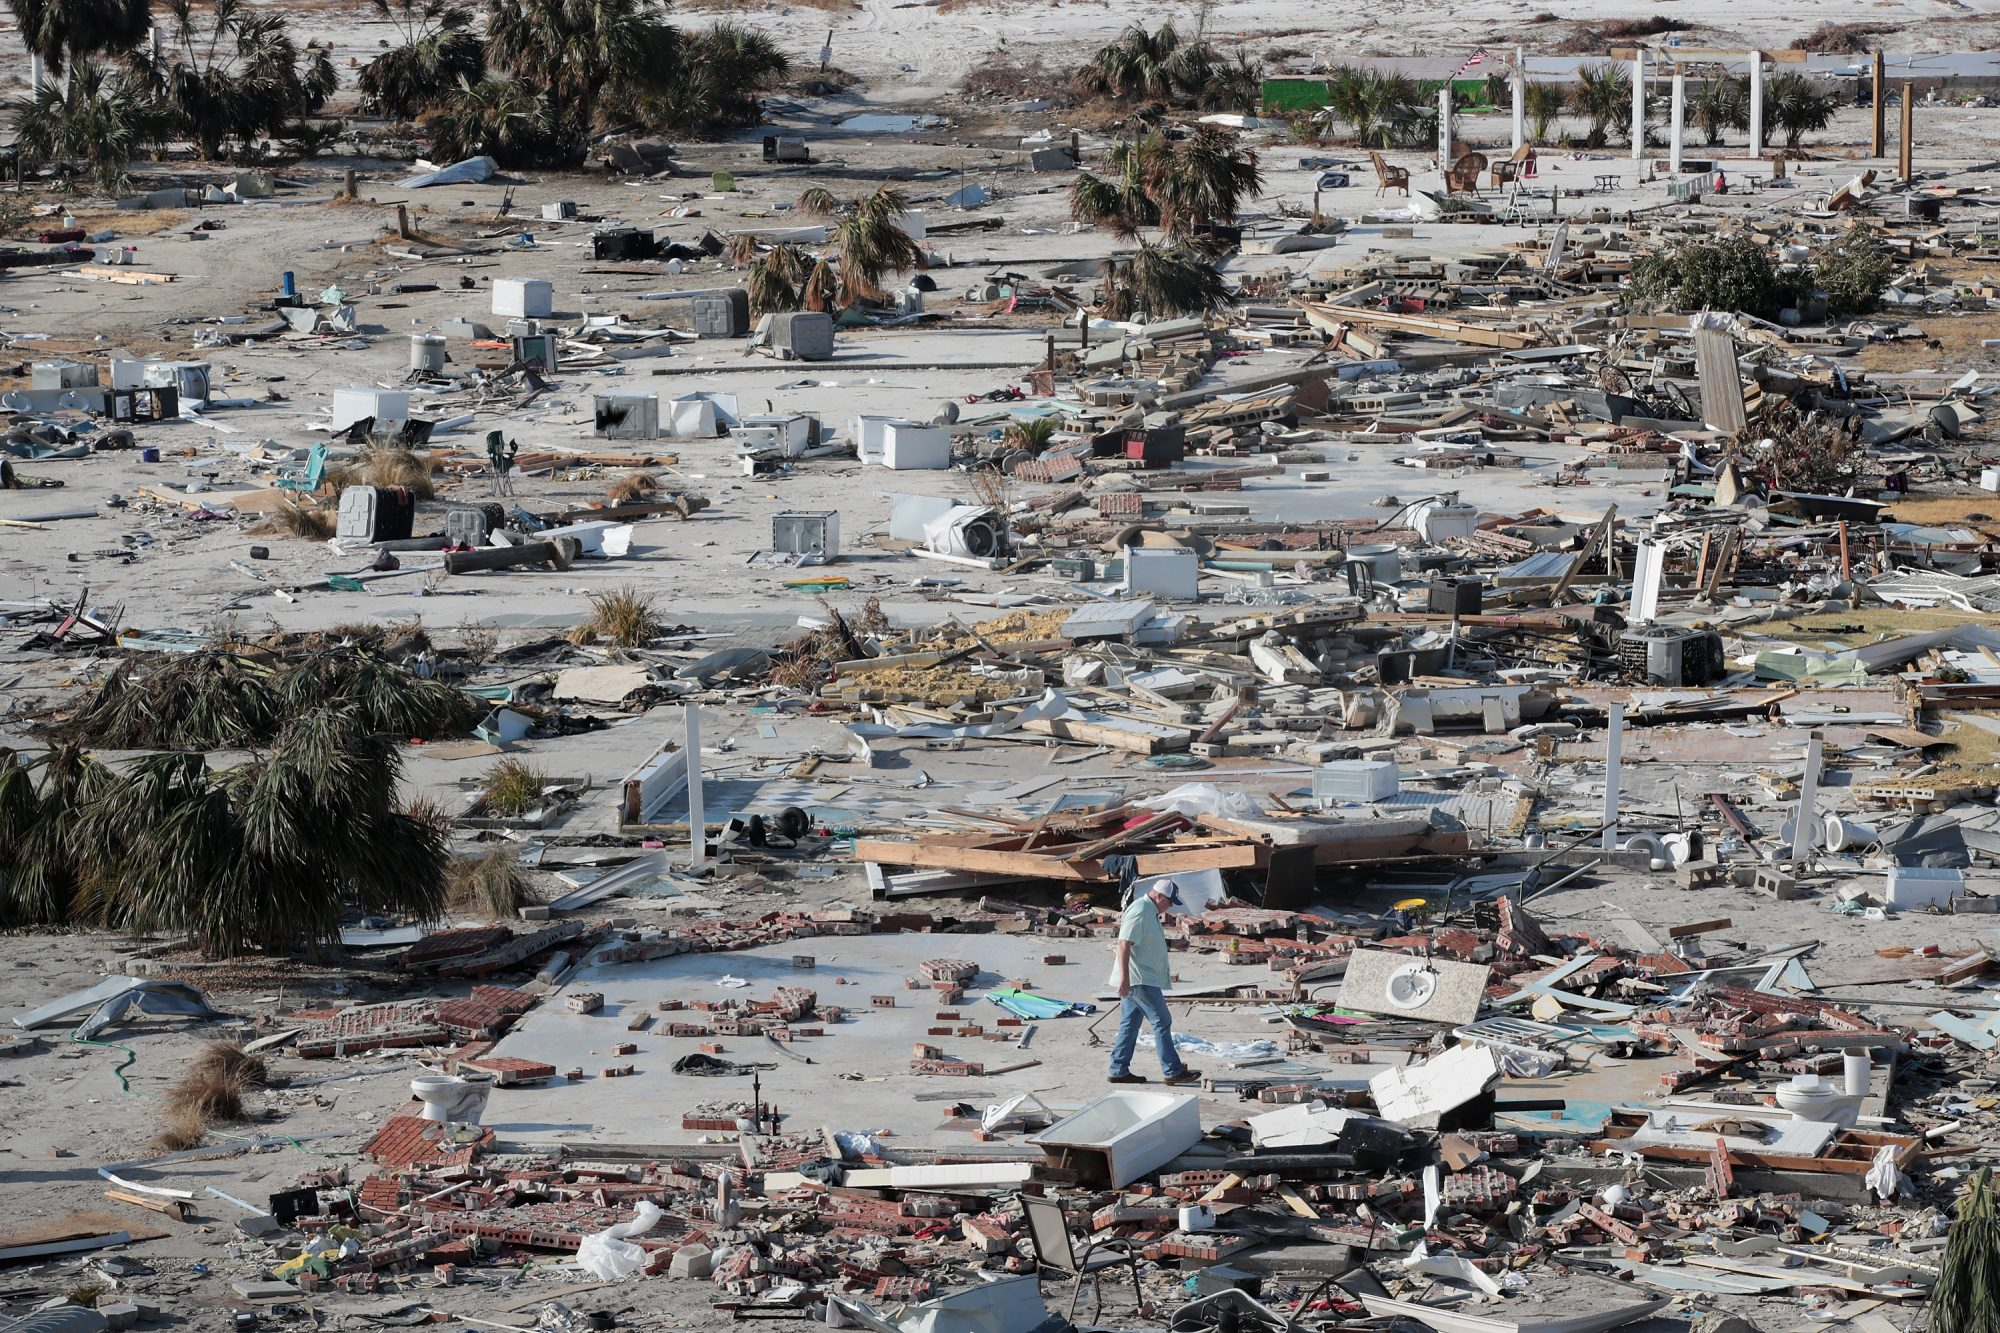 #8: Hurricane Michael, 2018